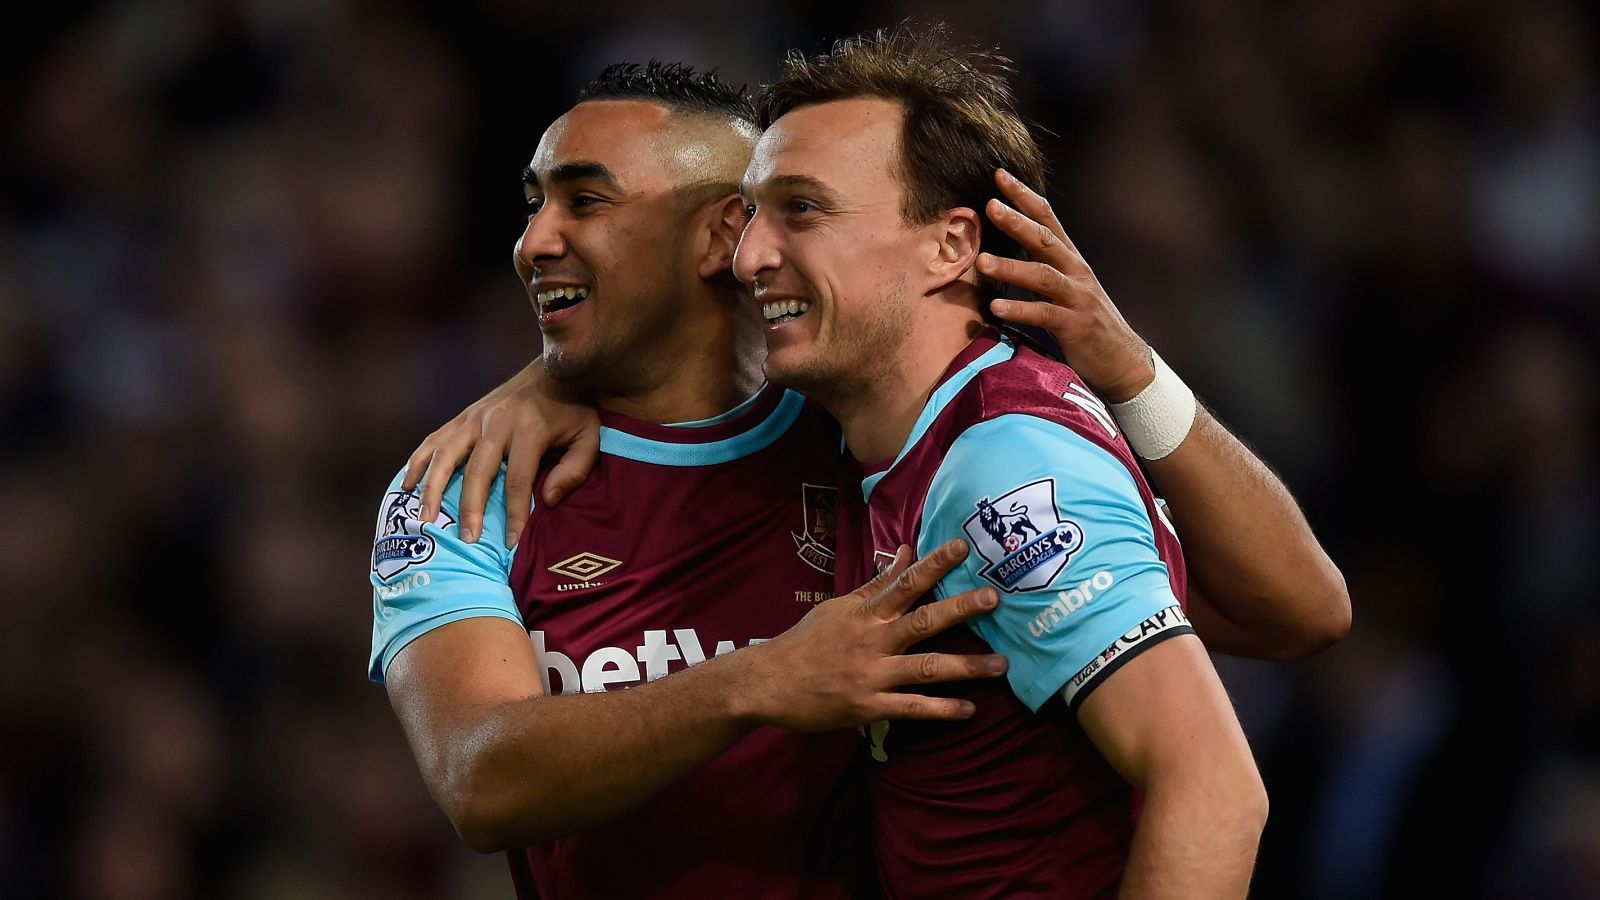 Noble expects West Ham teammate Payet to stay at the club